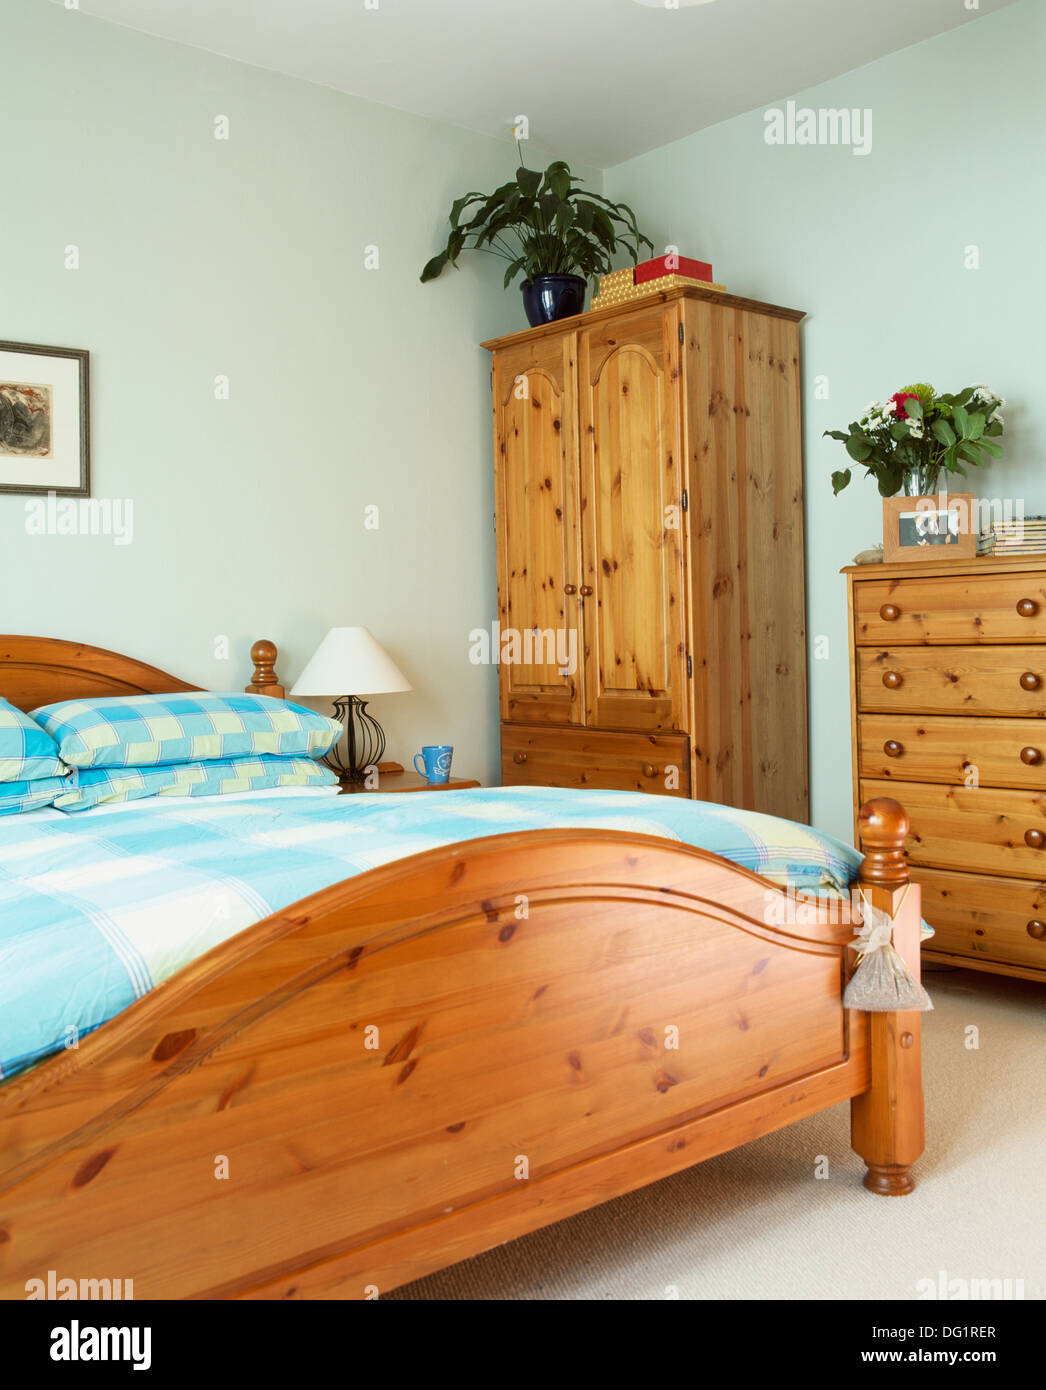 Pine Bedroom Chest Of Drawers Pine Bed With Turquoise Checked Pillows And Duvet In Economy Style